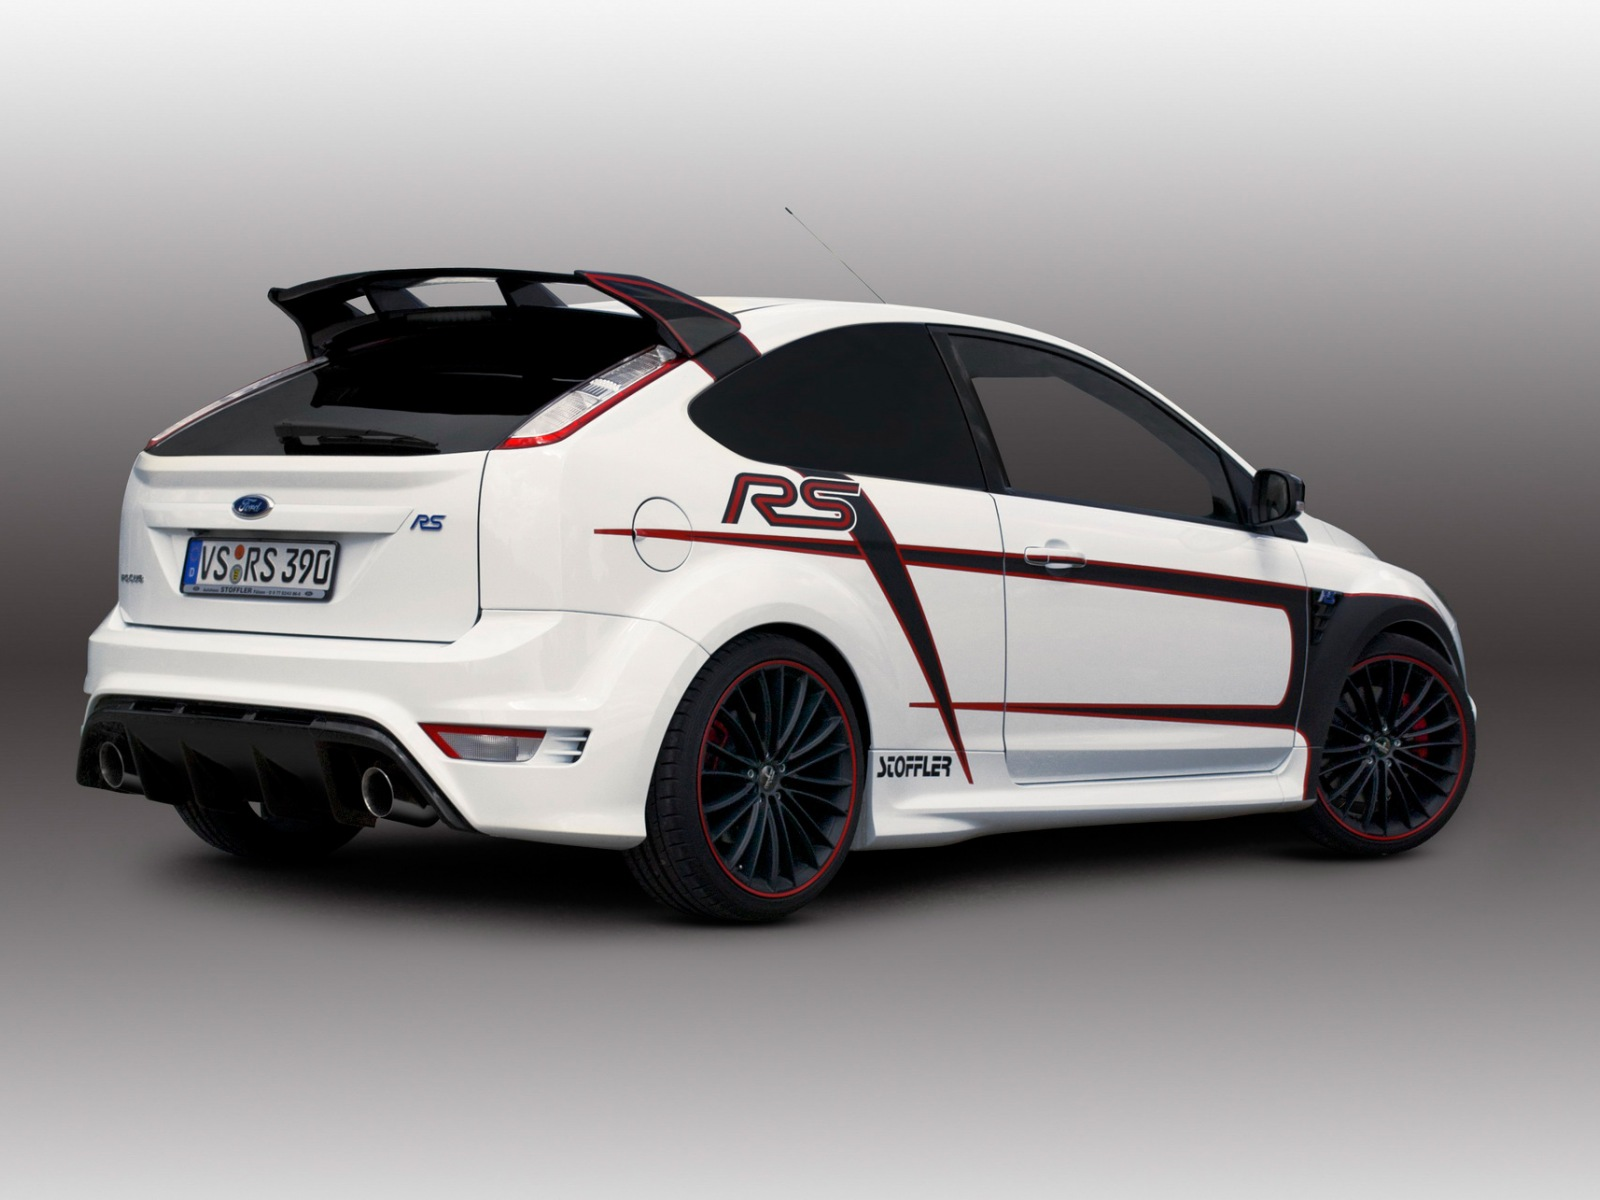 Ford Focus Rs Stoffler wallpaper 120252 1600x1200